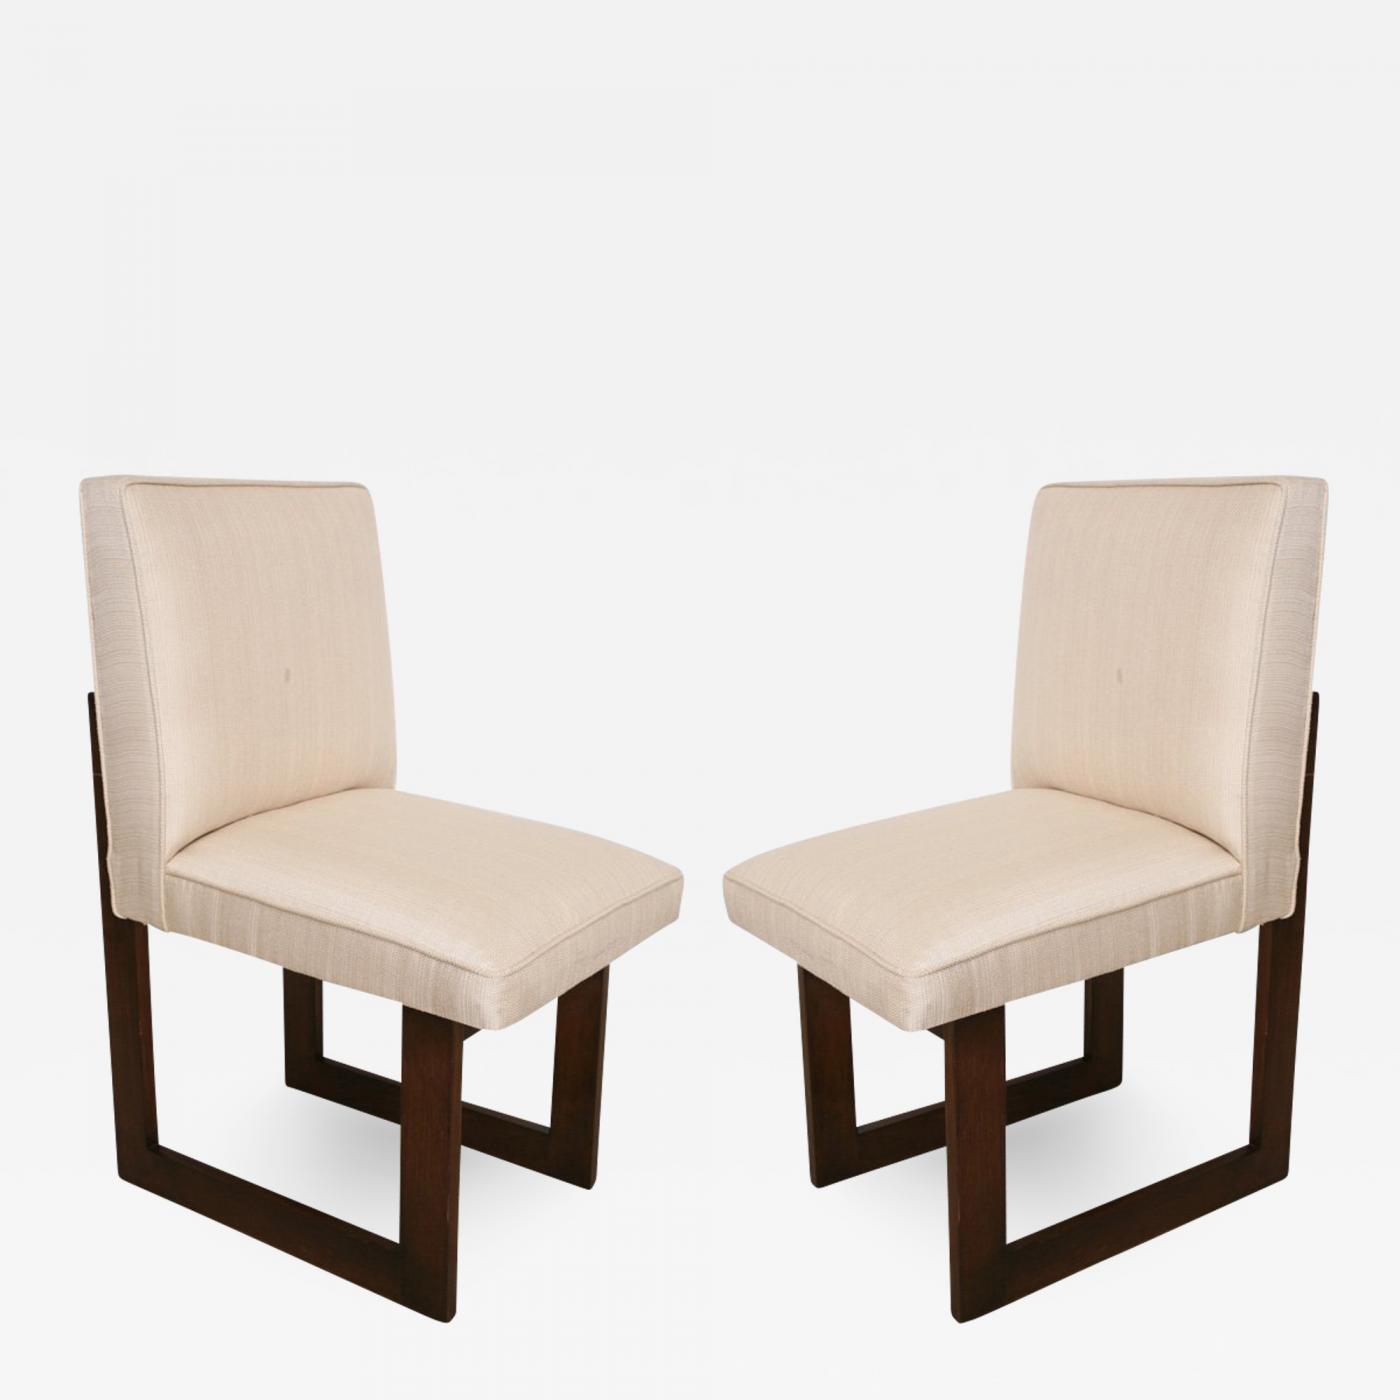 The Frames In Walnut  Illustrated In The Complete Kagan  These Chairs Were  Used For